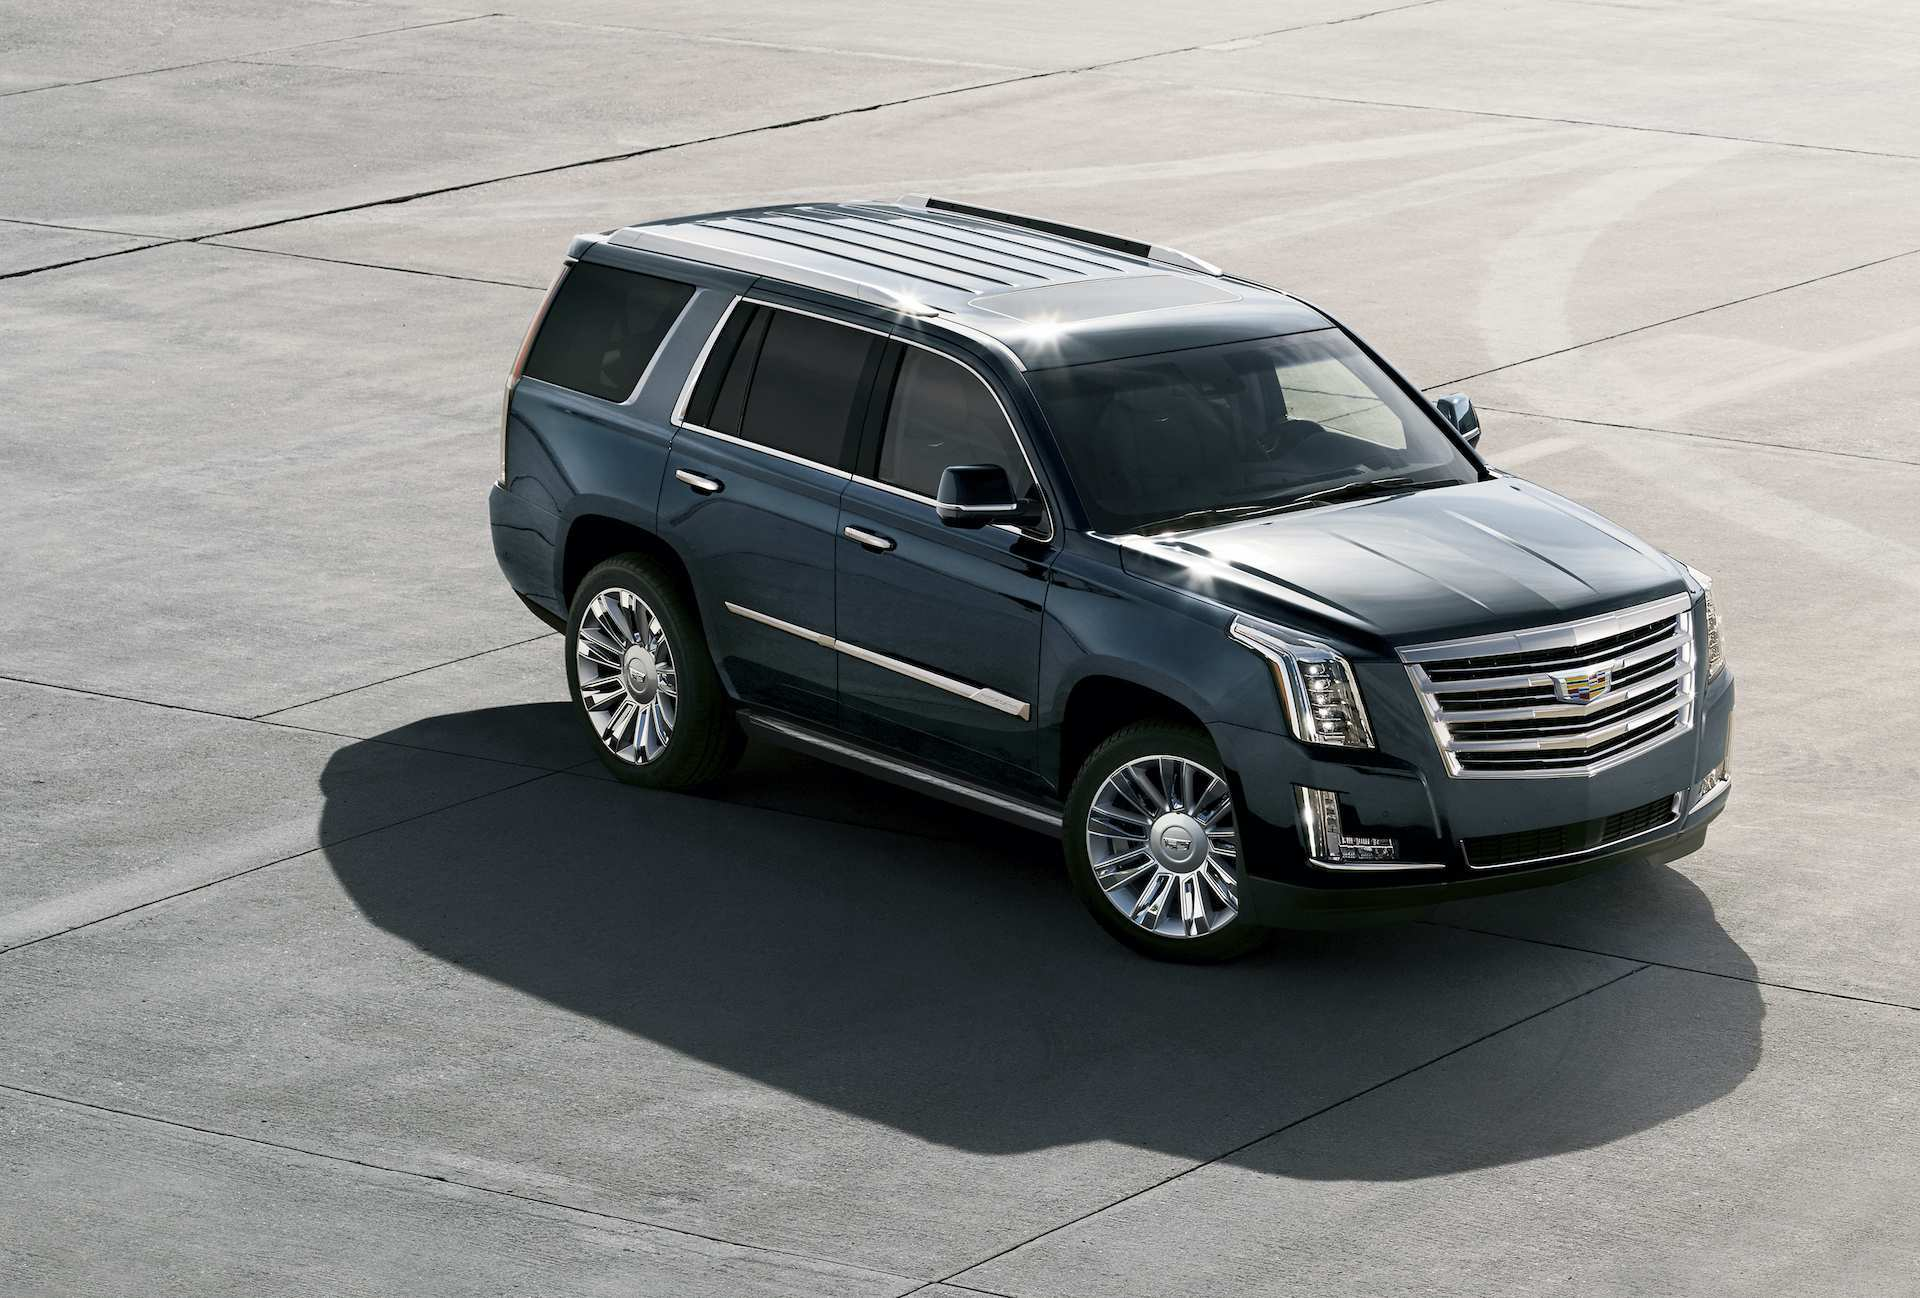 41 All New Cadillac Escalade New Body Style 2020 Engine